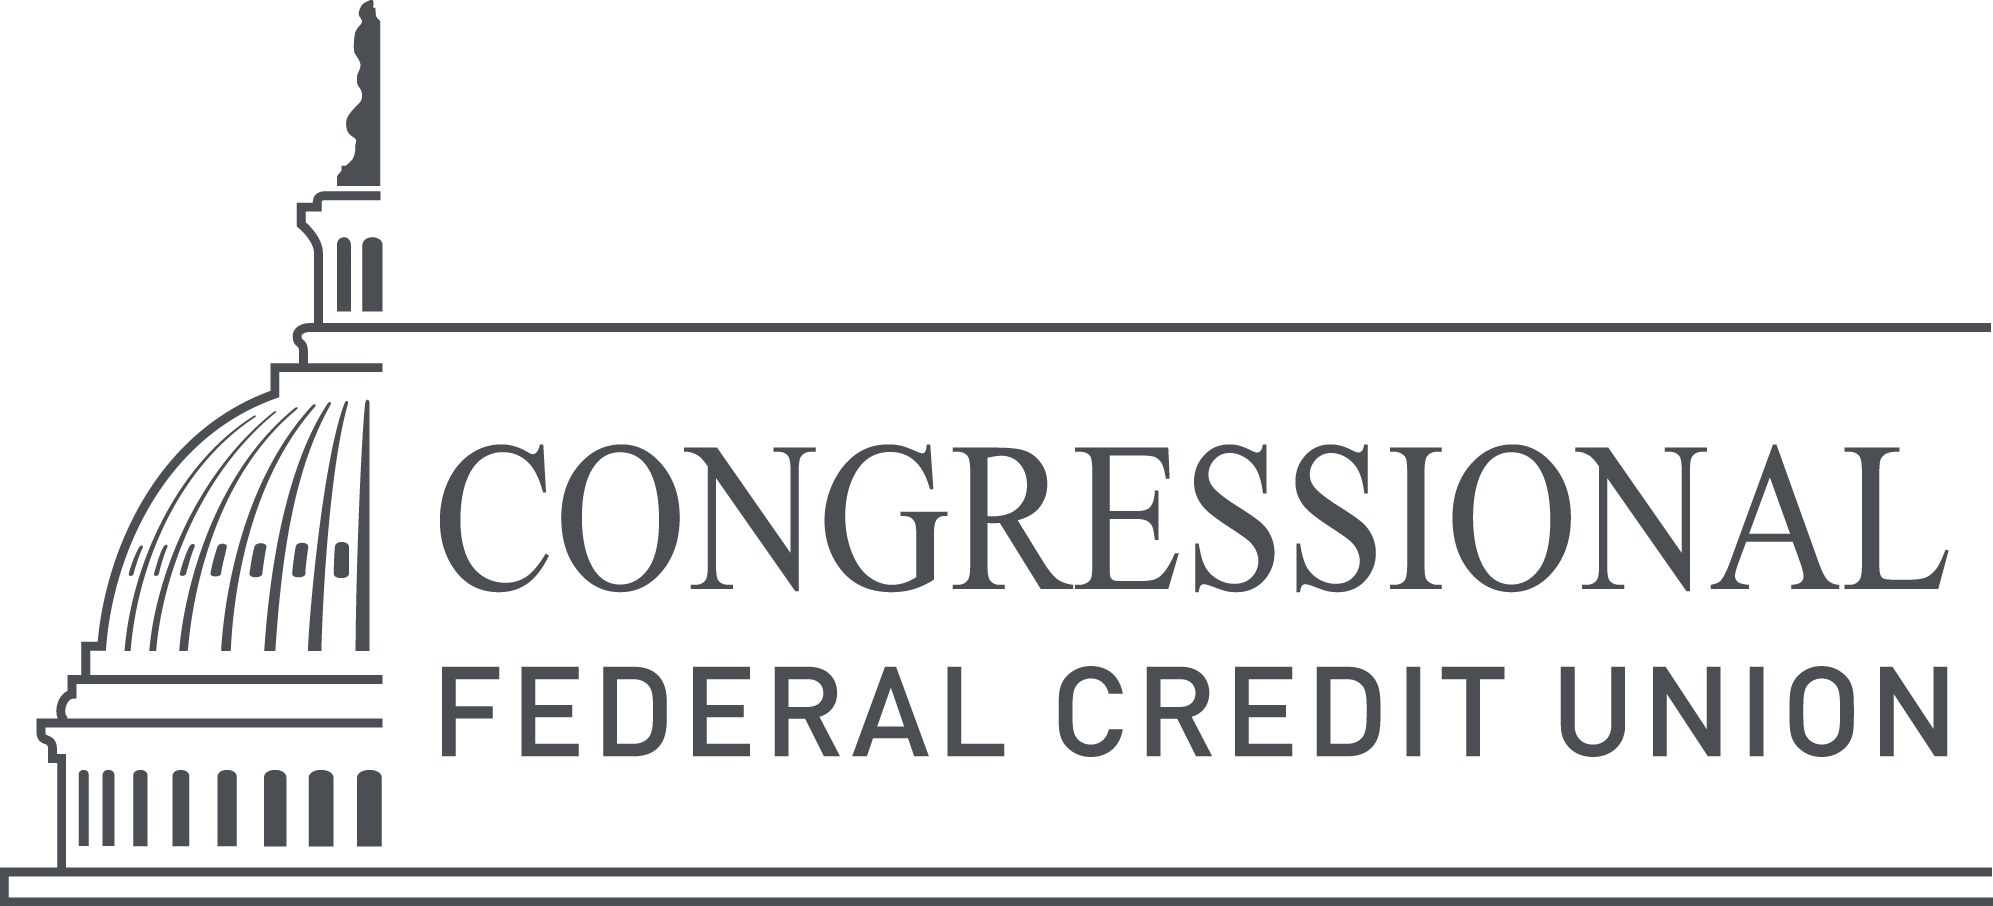 Congressional Federal Credit Union